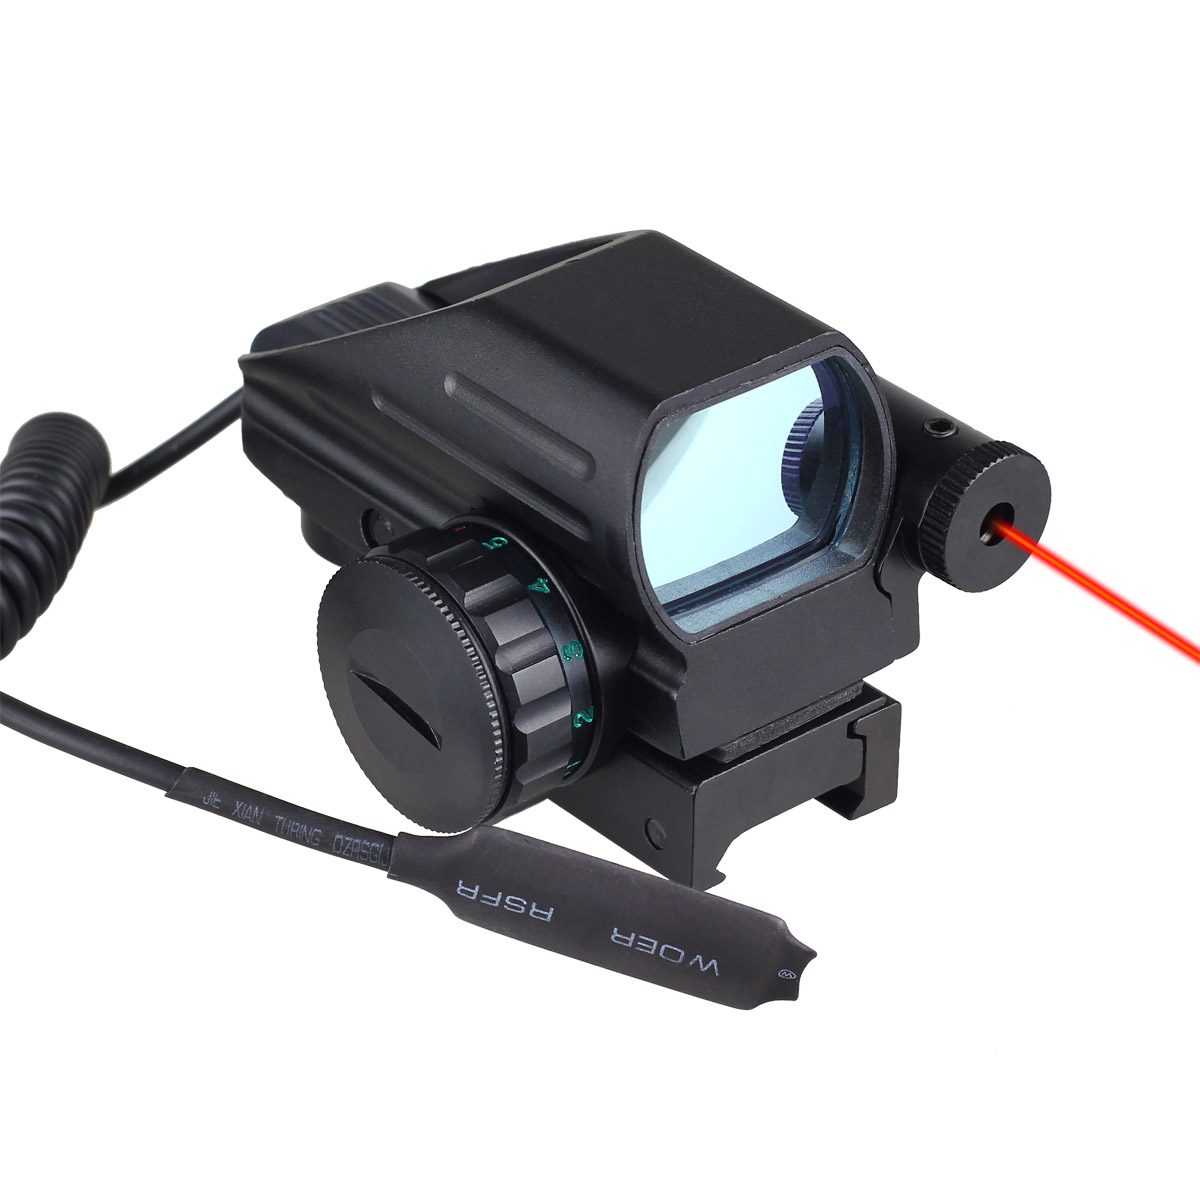 Holographic Laser Sight Scope Reflex 4 Red Green Dot Reticle Picatinny Rail 20mm for AR Rifle 12ga Shotgun Airsoft Hunting 3 10x42 red laser m9b tactical rifle scope red green mil dot reticle with side mounted red laser guaranteed 100%